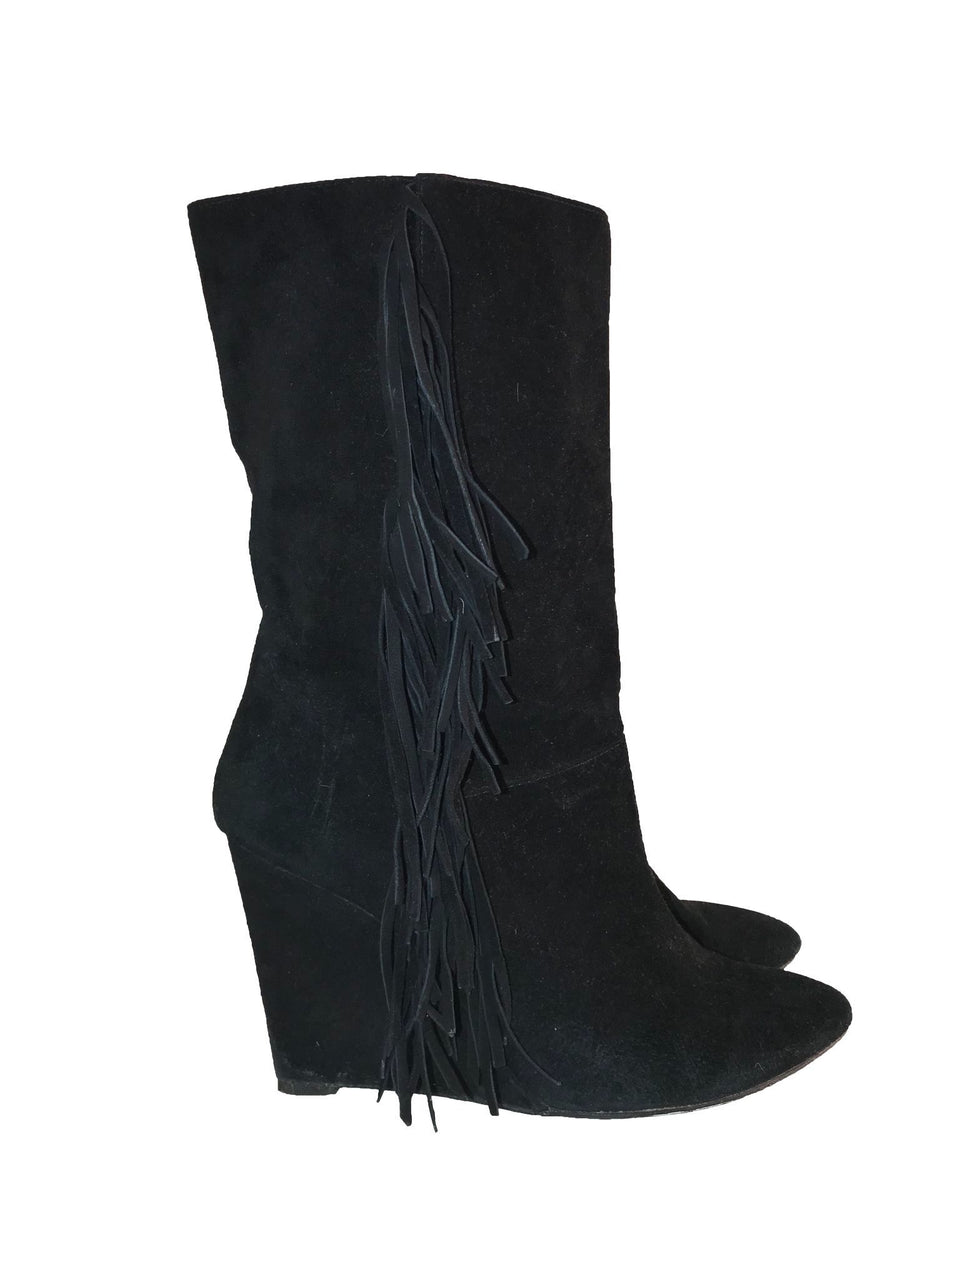 Fringe Suede Wedge Boots